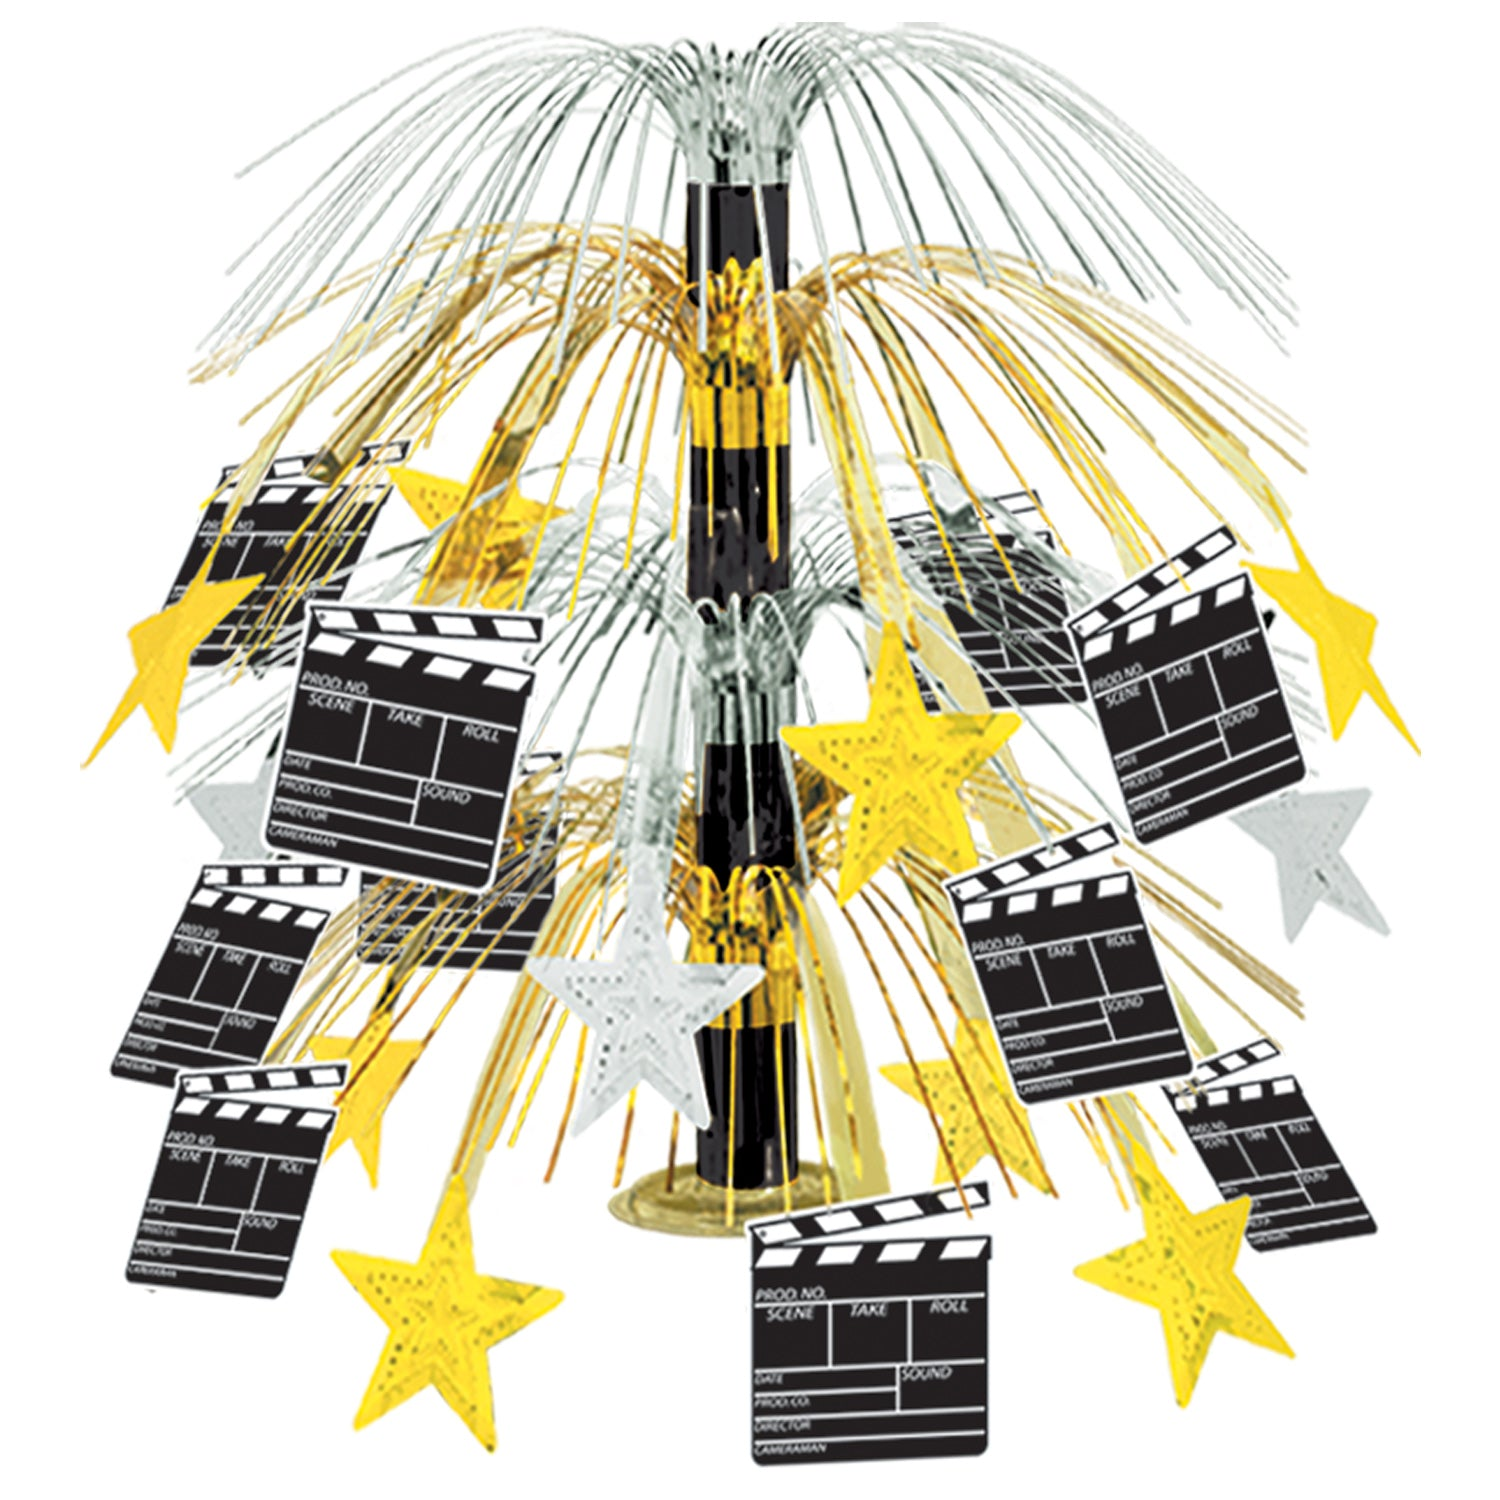 Movie Set Clapboard Cascade Centerpiece by Beistle - Awards Night Theme Decorations